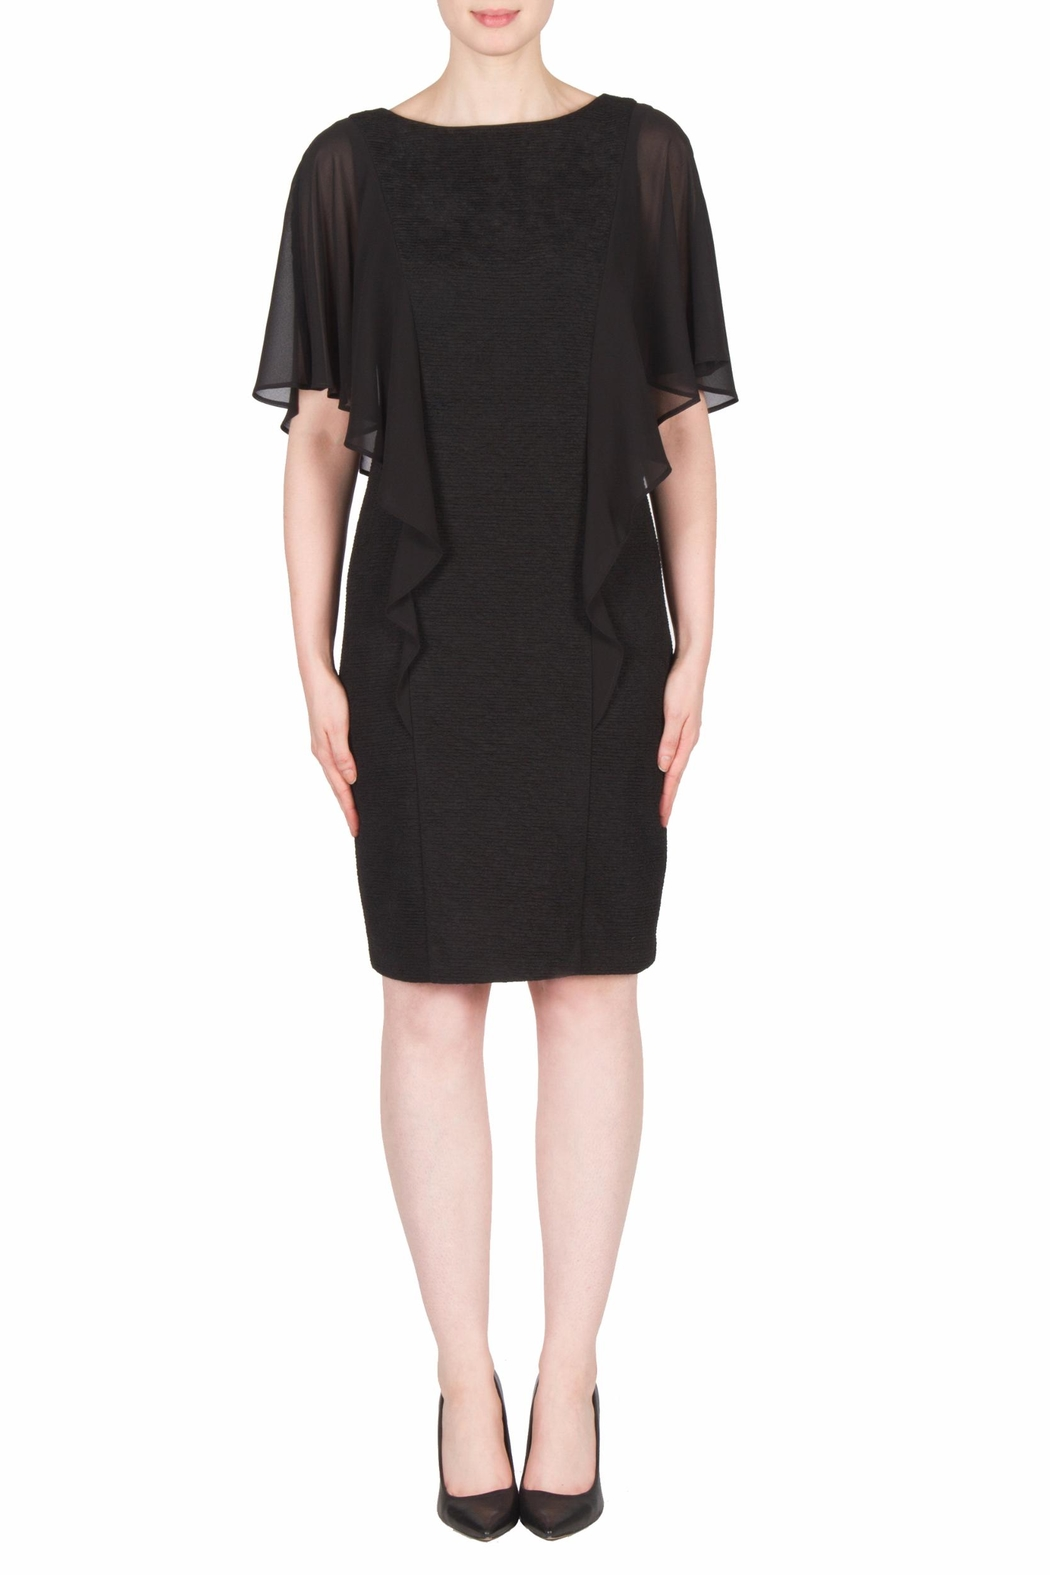 Joseph Ribkoff Ruffle Sleeve Dress - Main Image